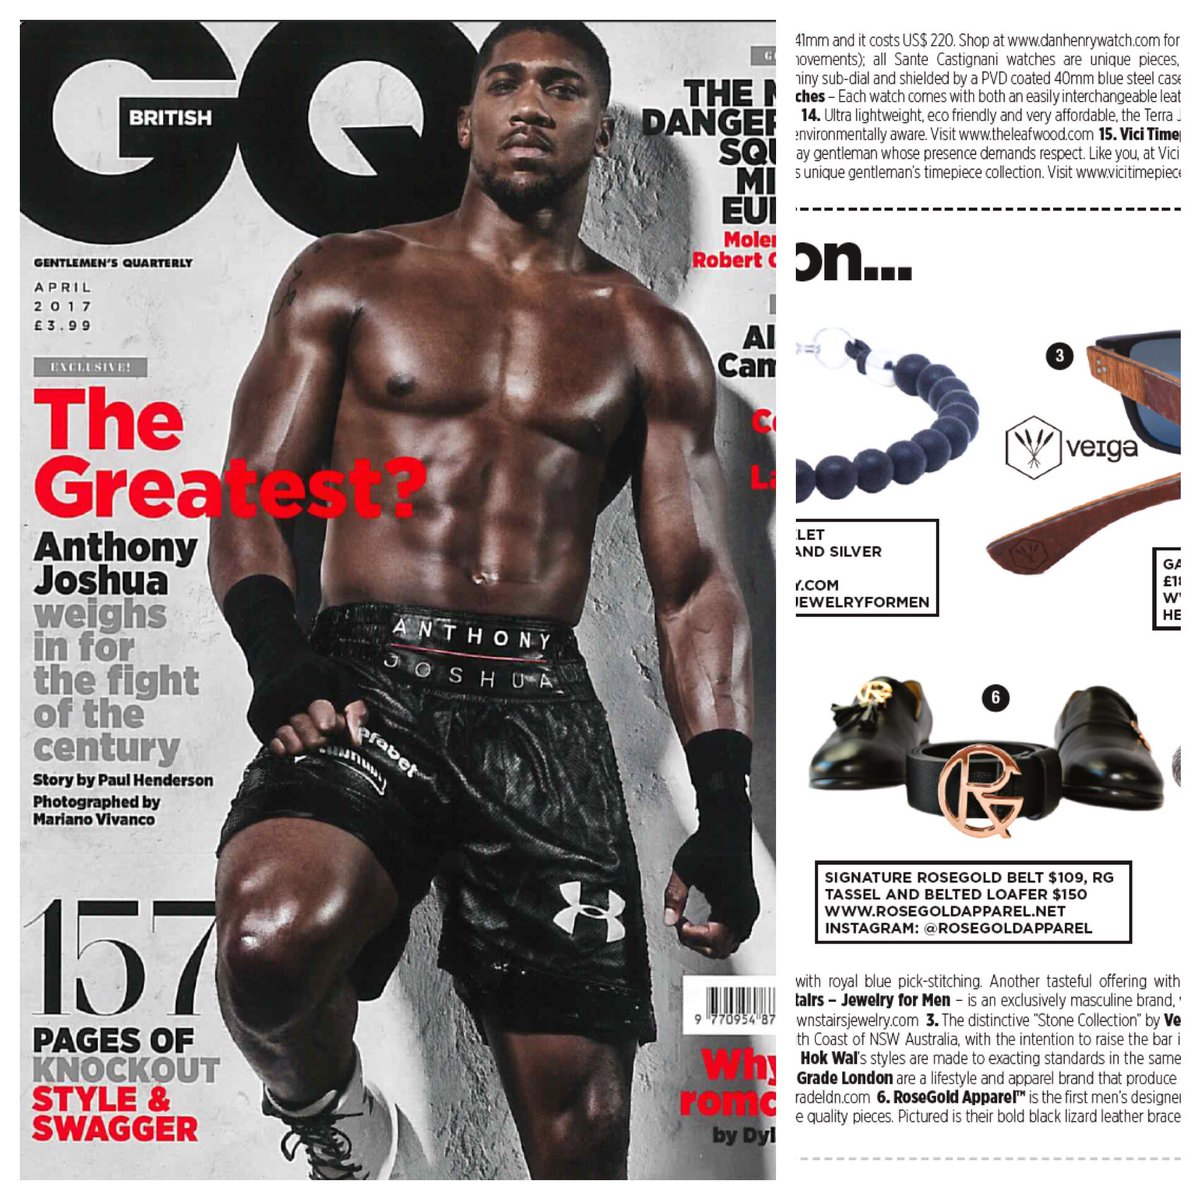 RoseGold Apparel™ in GQ&#39;s April Issue!  #rosegoldapparel #rosegold #apparel #mens #designer #menstyle #fashion #Mensfashion #shoes #belt<br>http://pic.twitter.com/jGRO3tLMpR